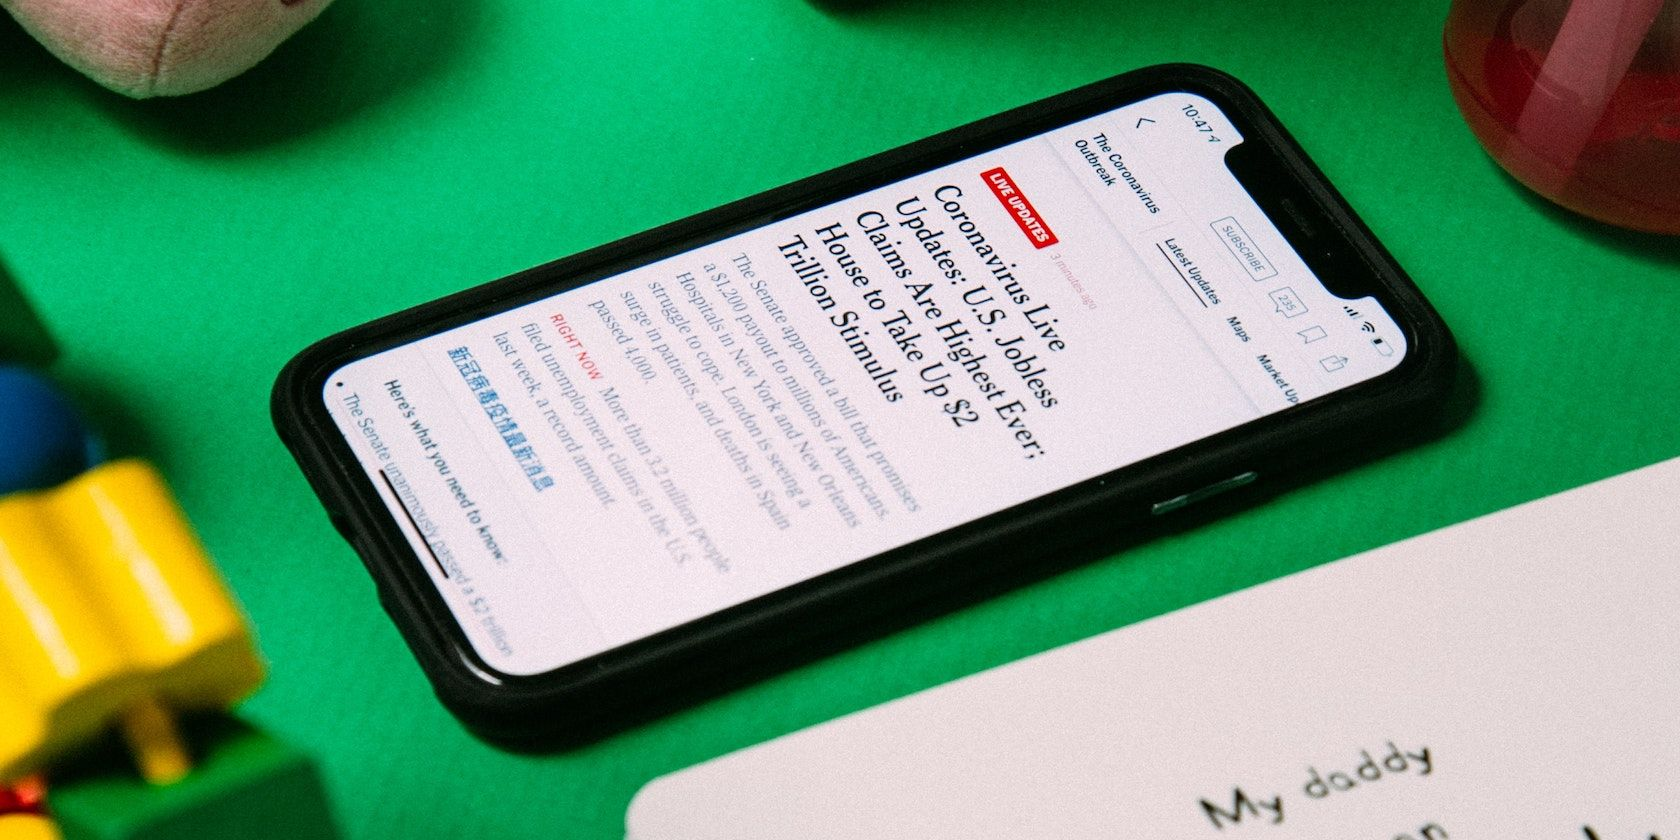 Major News Publishers Join App Coalition Protesting Apple Tax